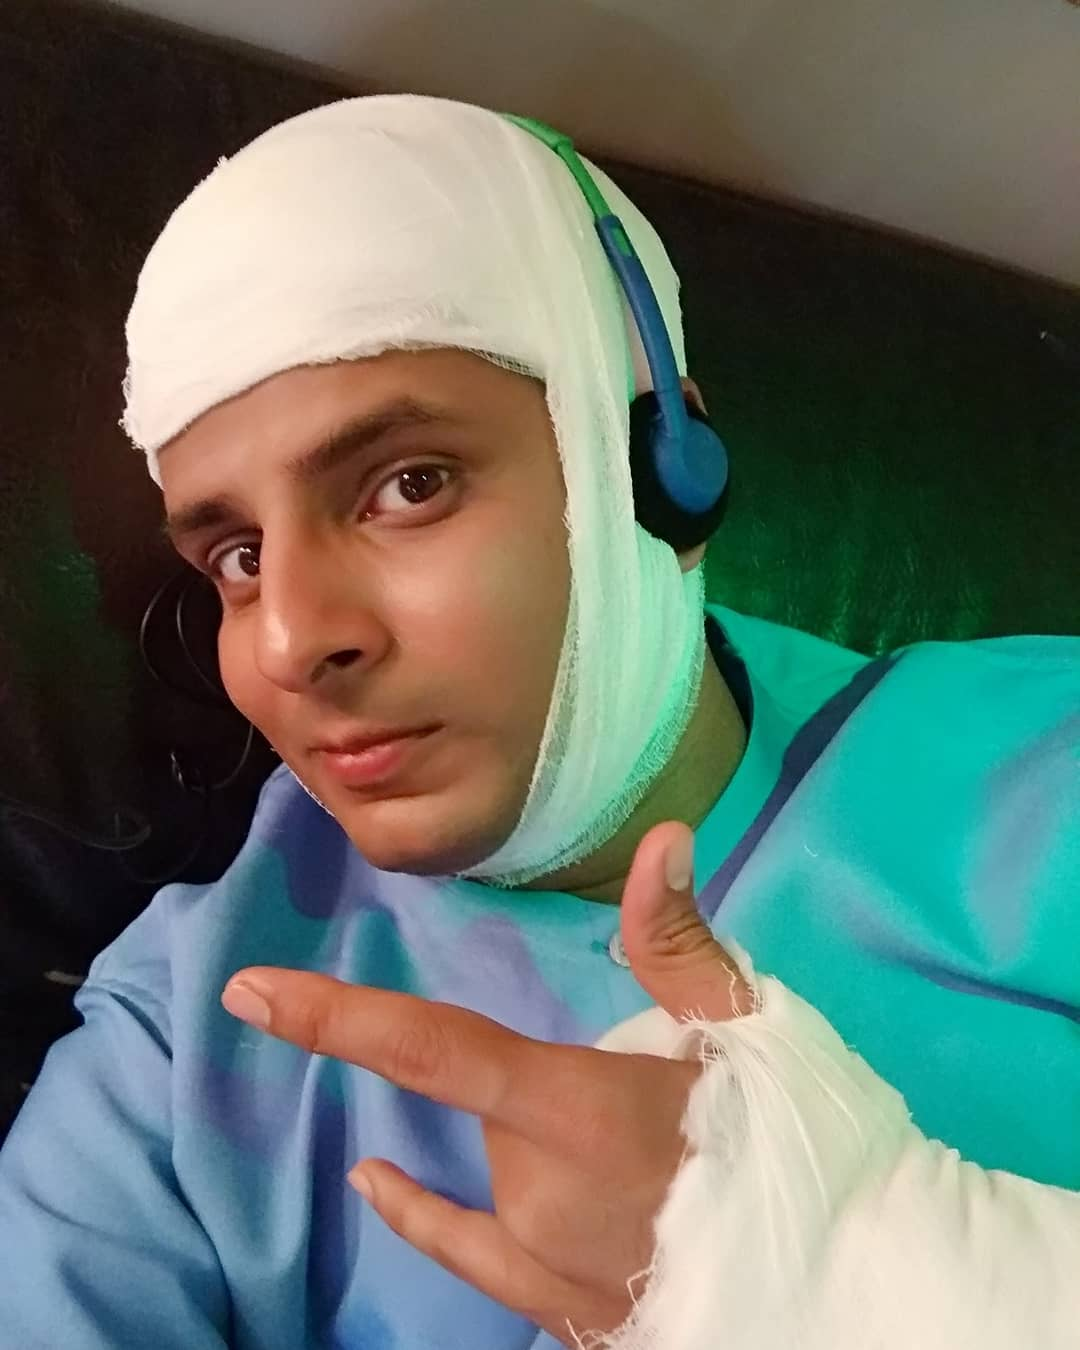 Ojas Rawal,  LadiesSpecial, ShootDiaries, OjasRawal, actor, surgery, scene, swag, selfie, sonytv, hindi, serial, selfietime, medlife, doctor, dr, amardesai, actorslife, mumbai, india, ojas, sony, shooting, yo, swagger, bandage, plaster, patient, beatup, behindthescenes, actorlife